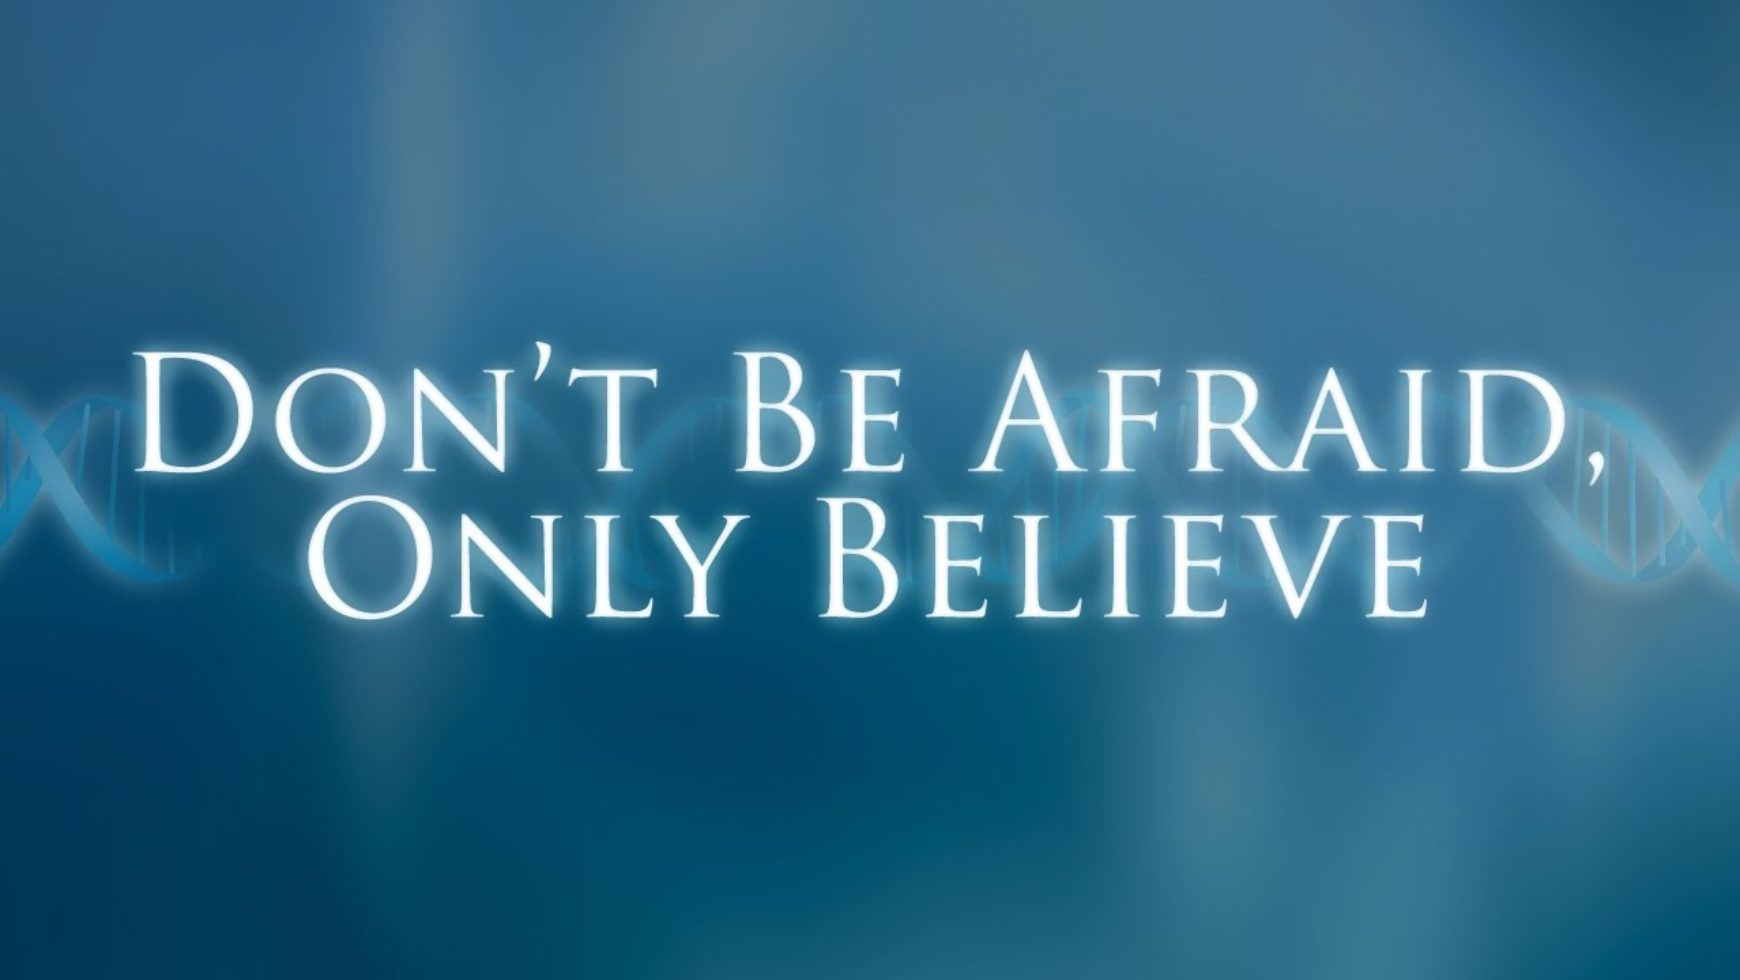 Don't be afraid, only believe